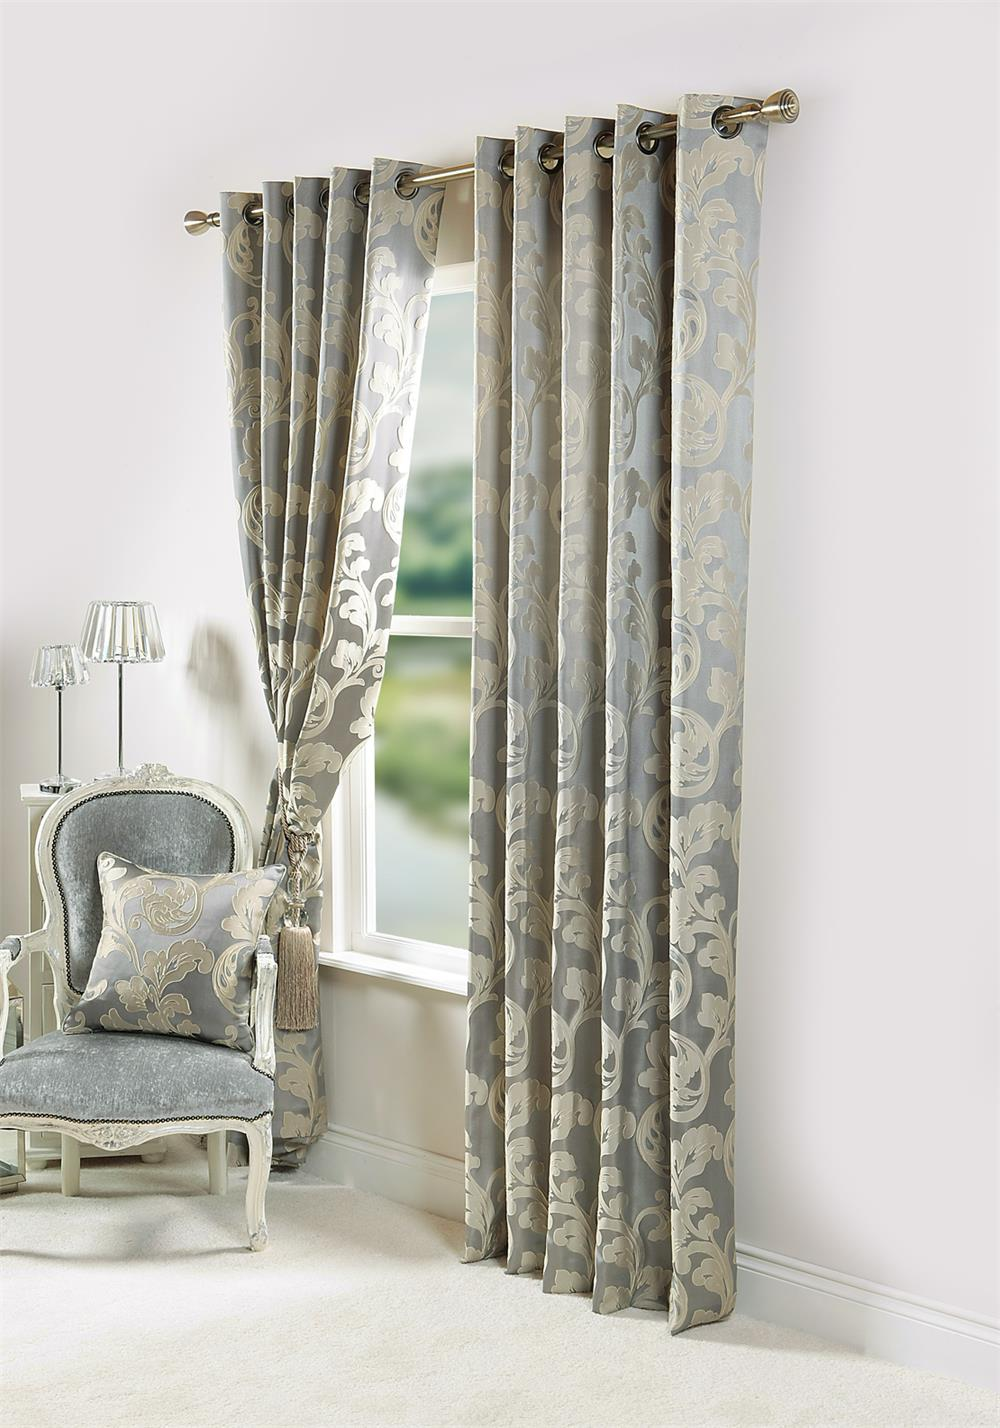 Scatterbox Sateen Lined Toledo Readymade Eyelet Curtains, Silver